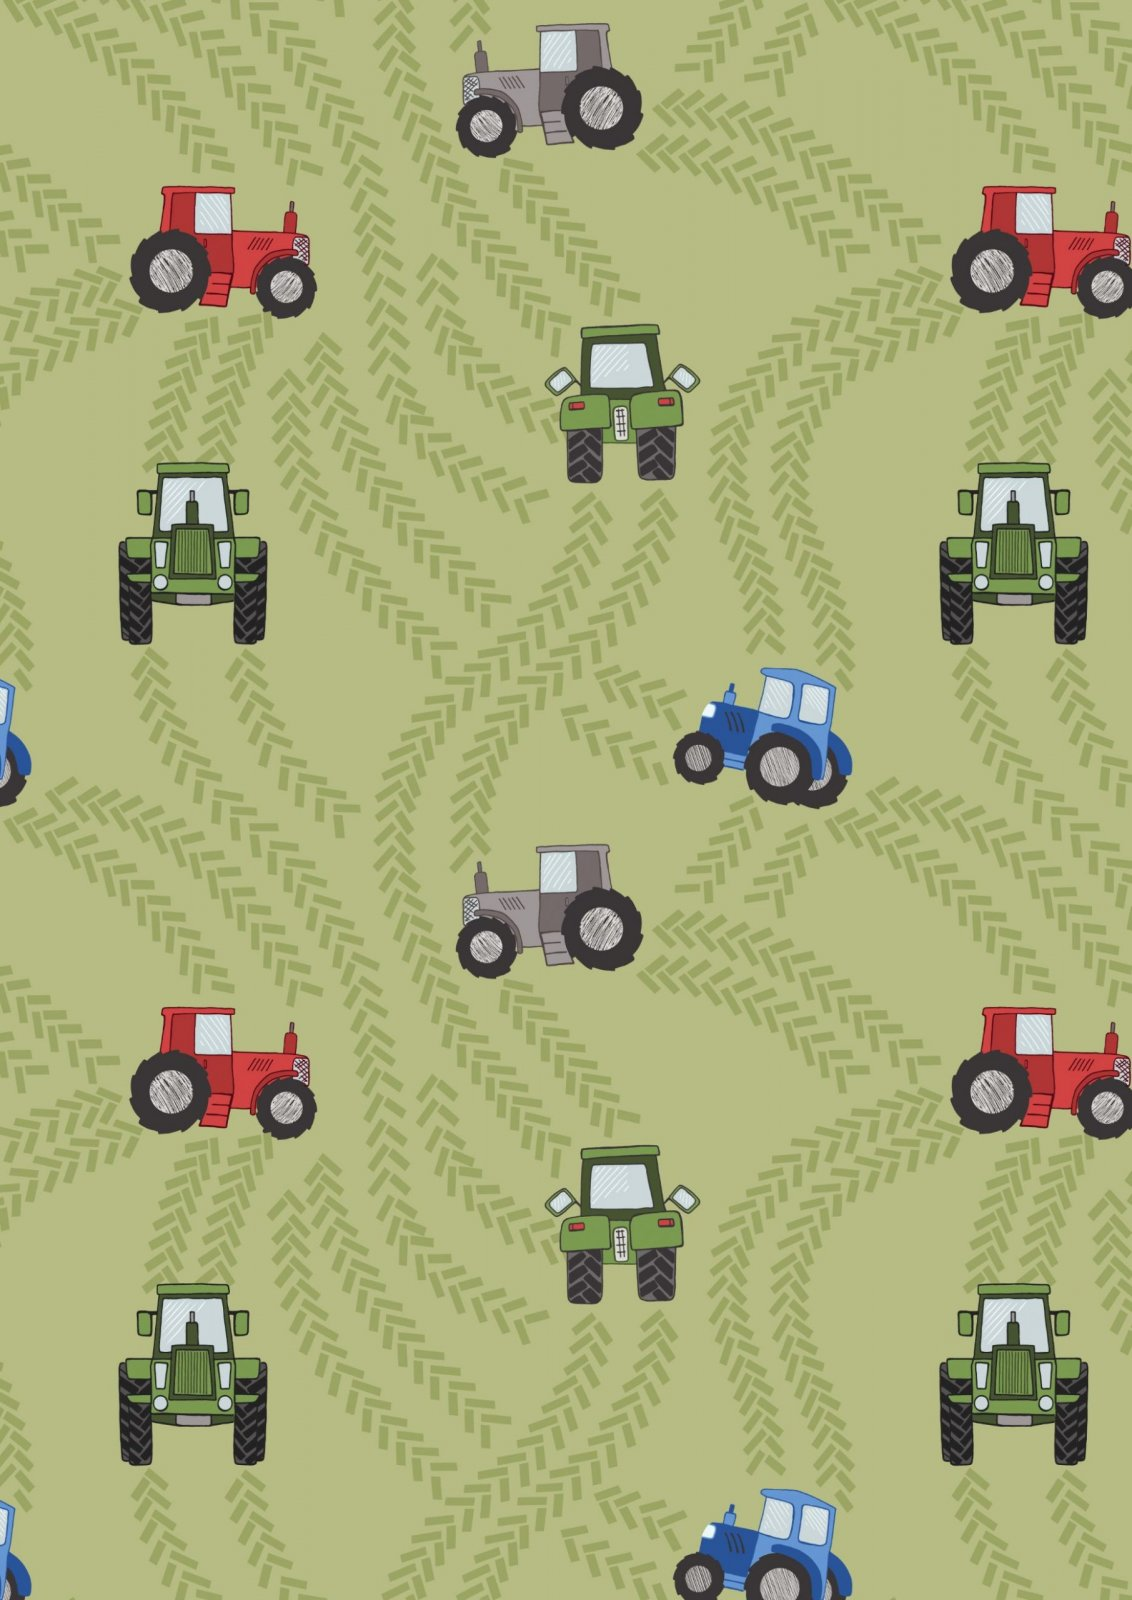 Piggy Tails : Green Tractor Trails - #A533-1